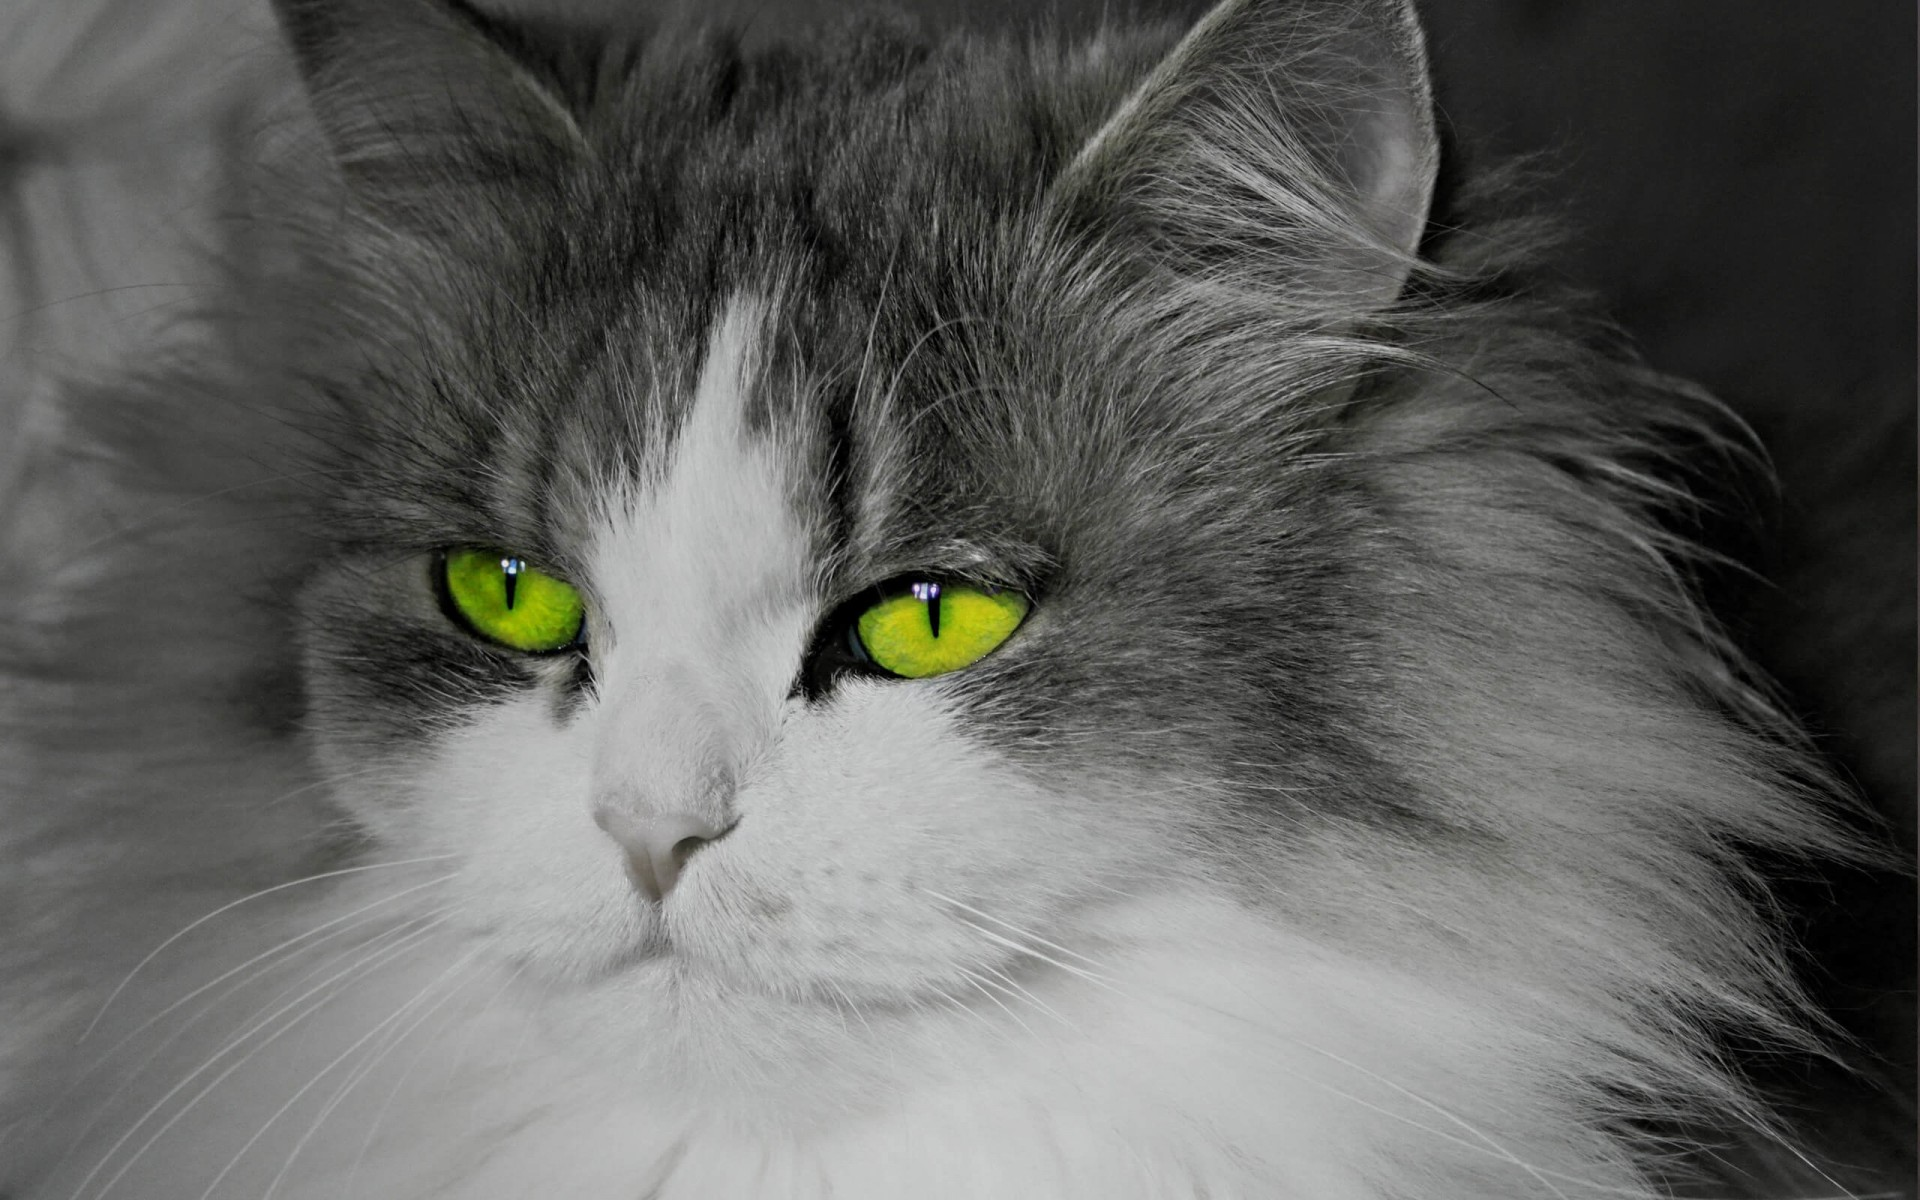 Cat With Stunningly Green Eyes Wallpaper for Desktop 1920x1200